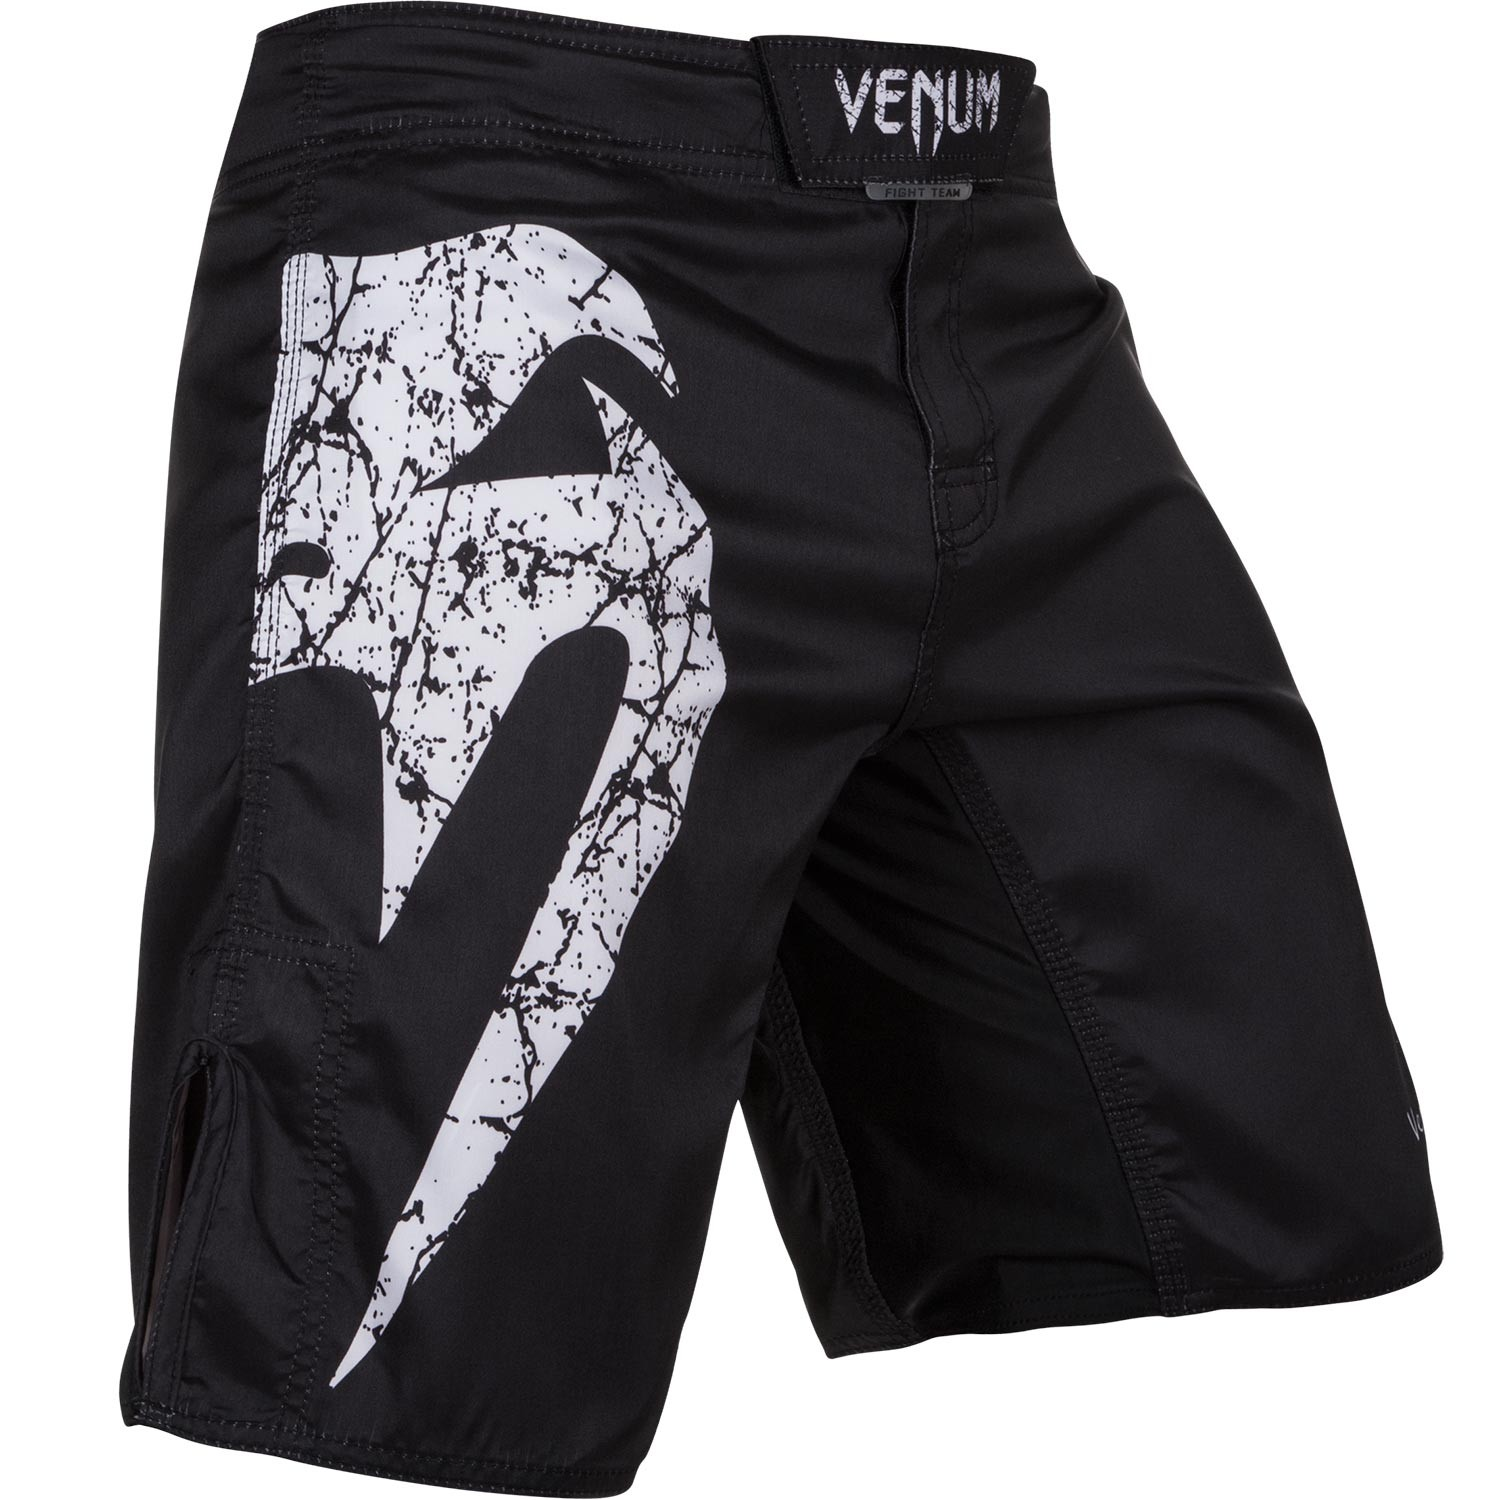 Шорты ММА Venum Original Giant Black/White<br>Вес кг: 250.00000000;